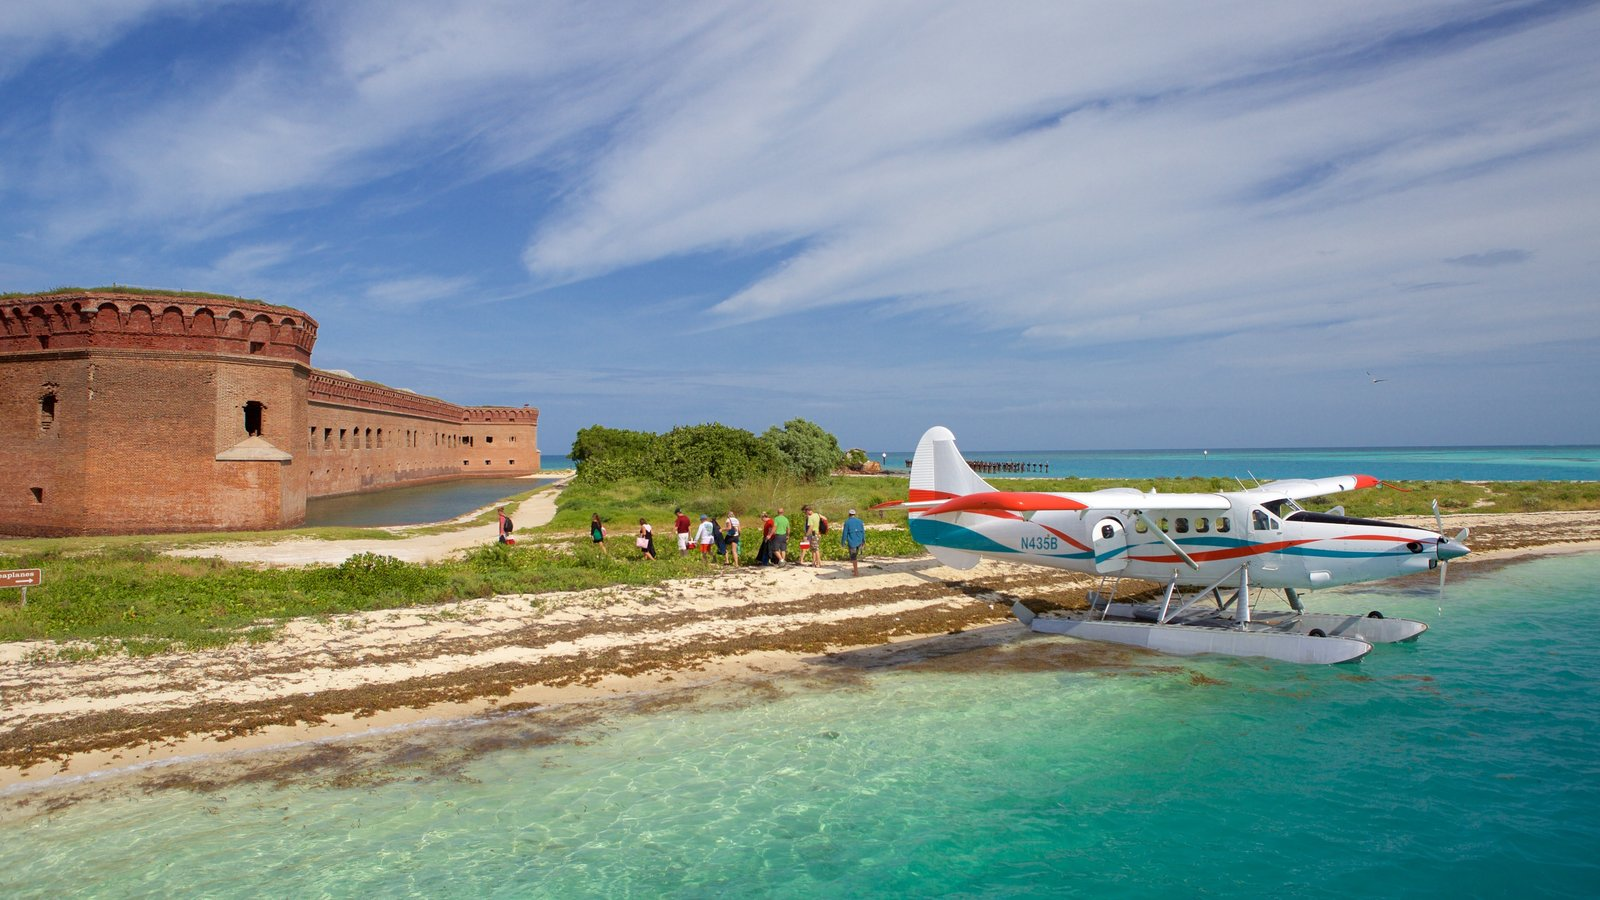 Dry Tortugas National Park showing heritage architecture and general coastal views